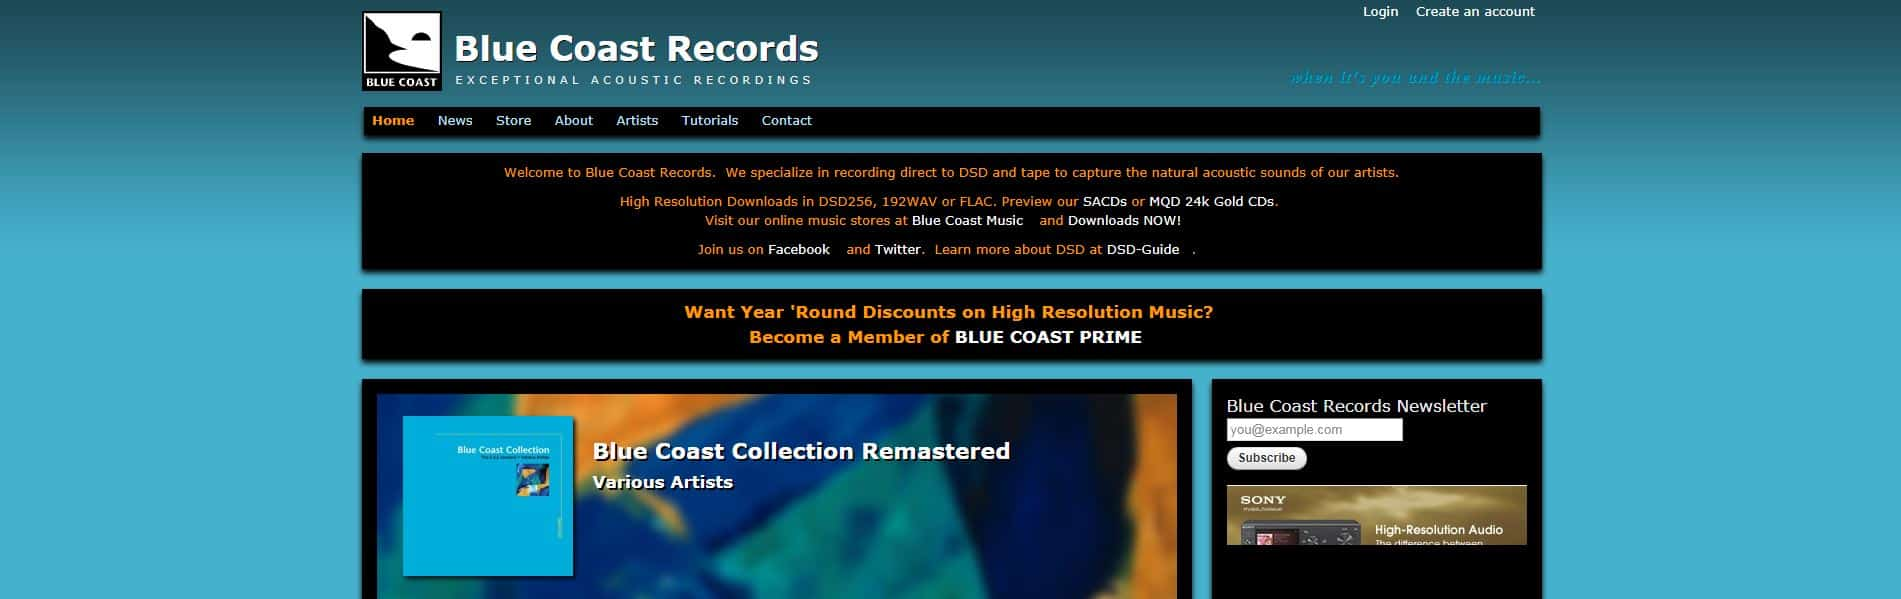 15 Best High Resolution Music Download Sites -